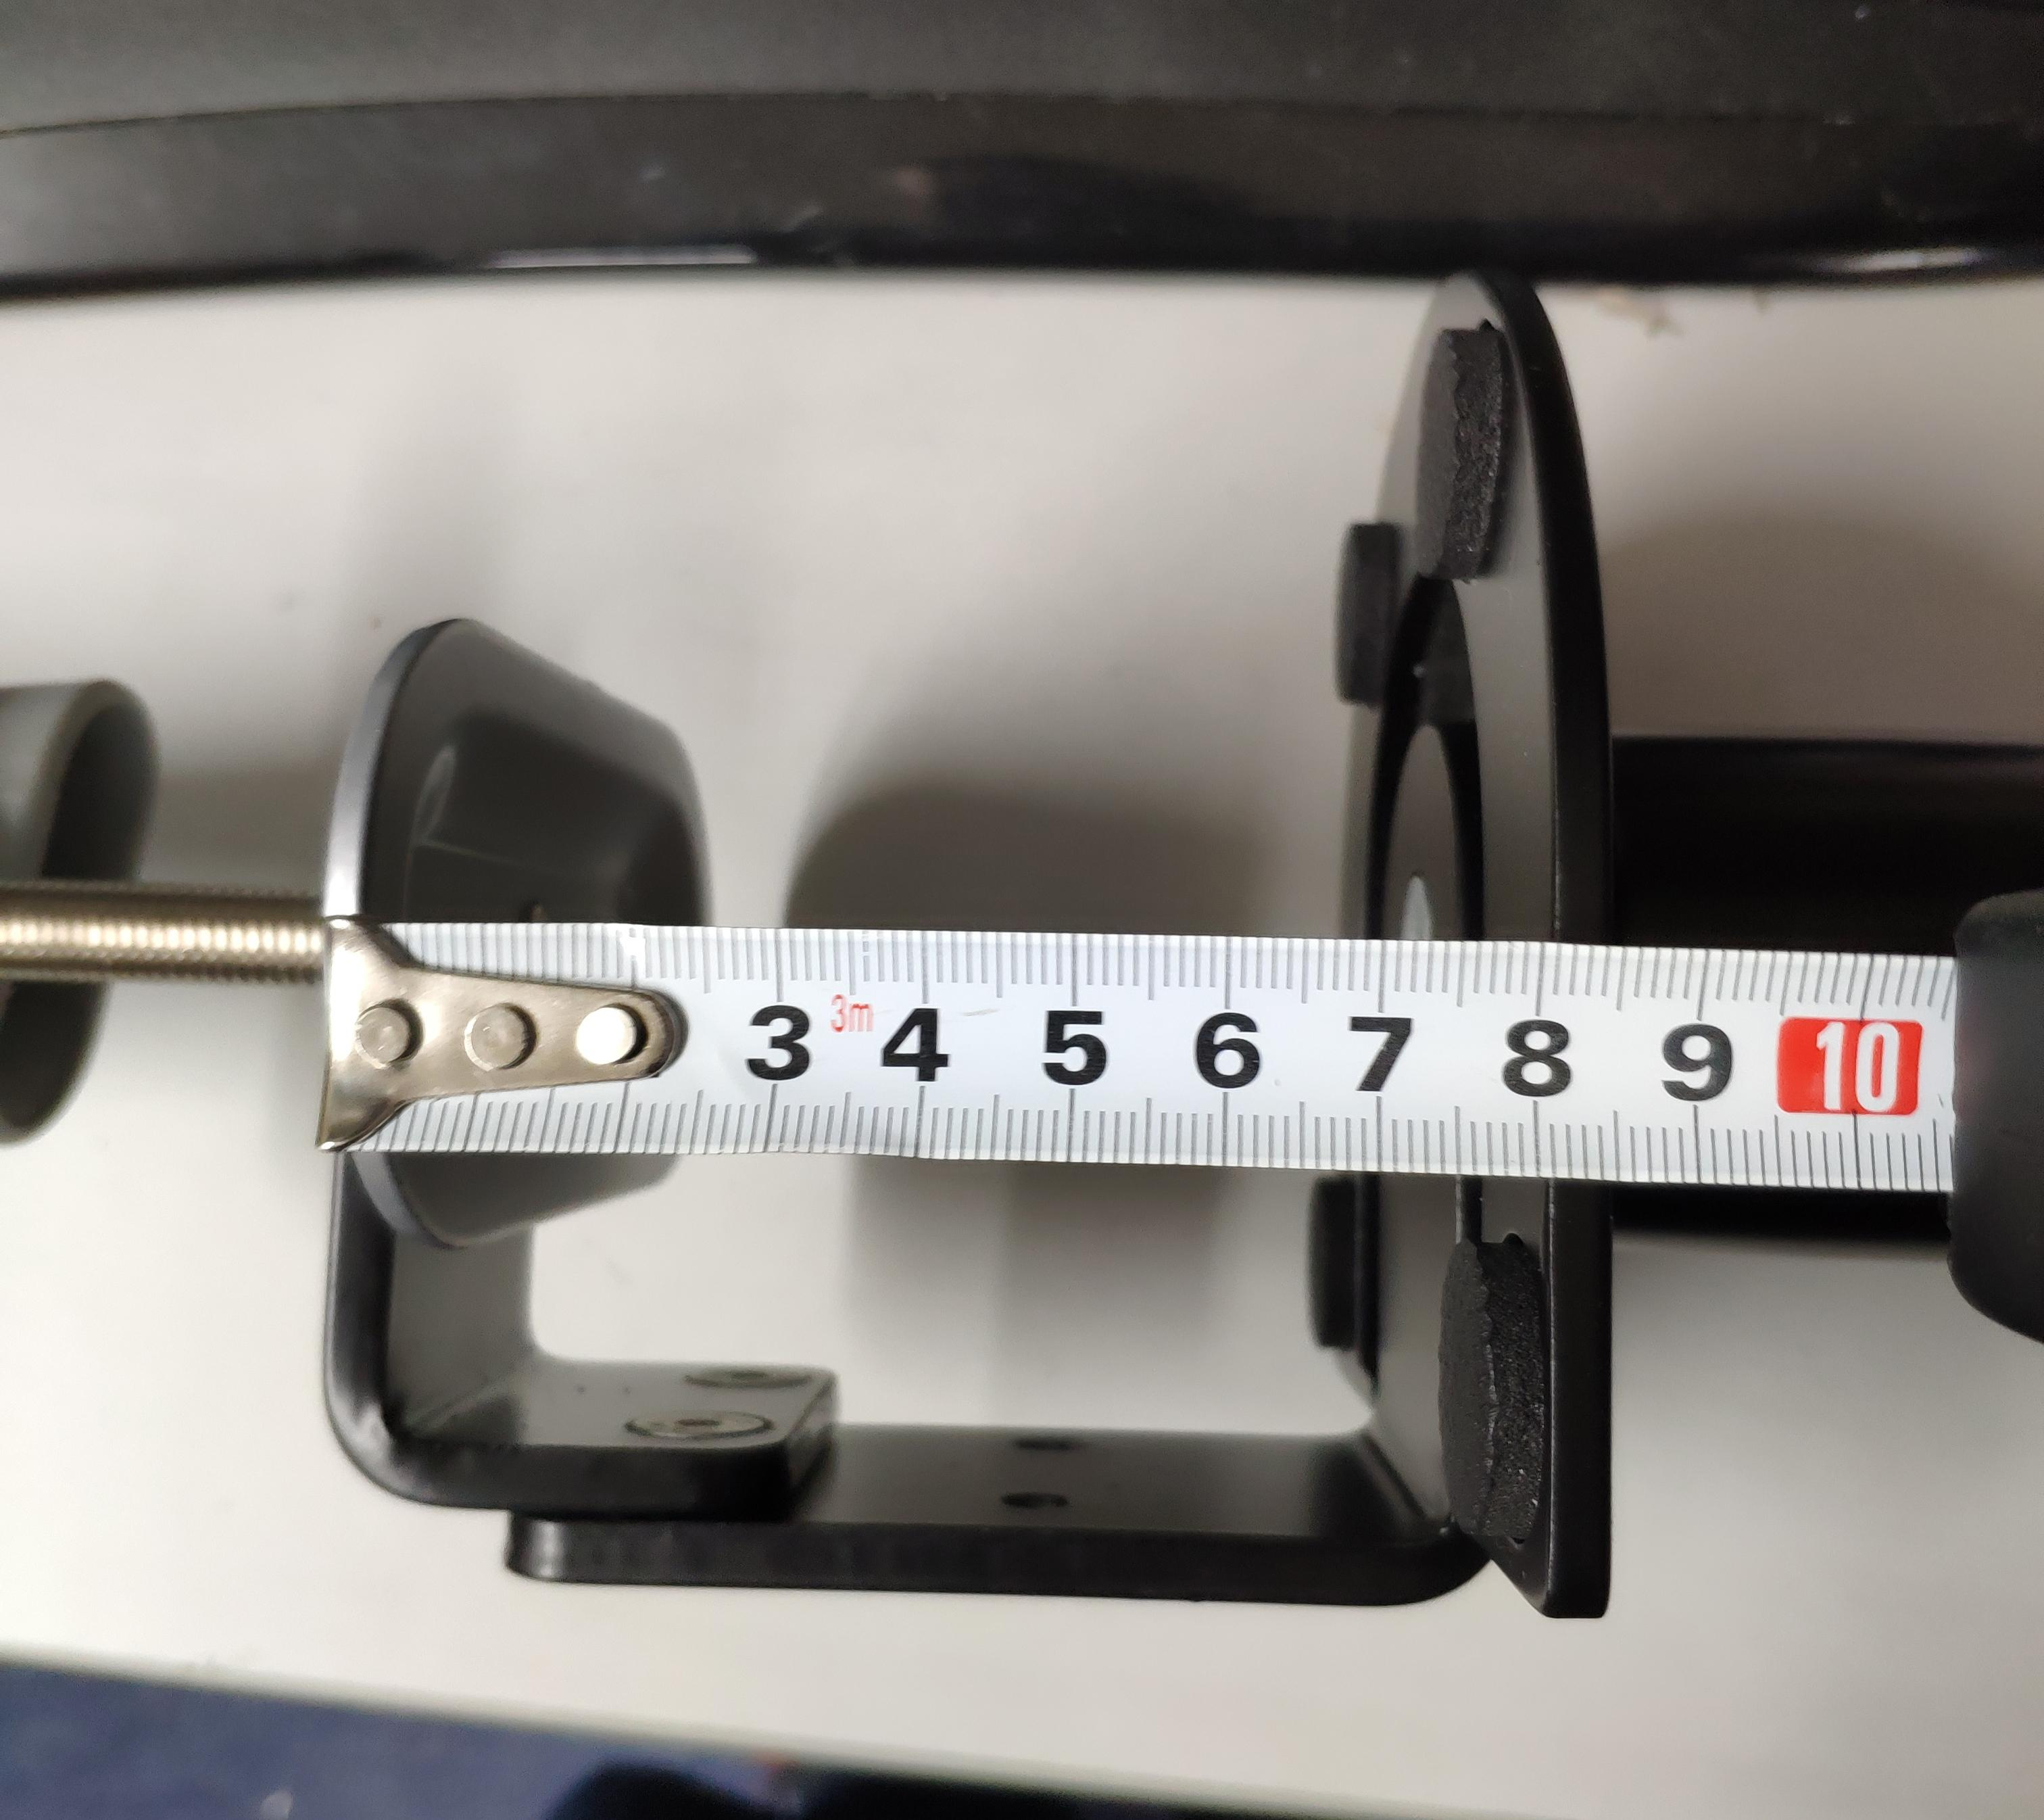 Clamp with measurements of desk depth shown, 8cm